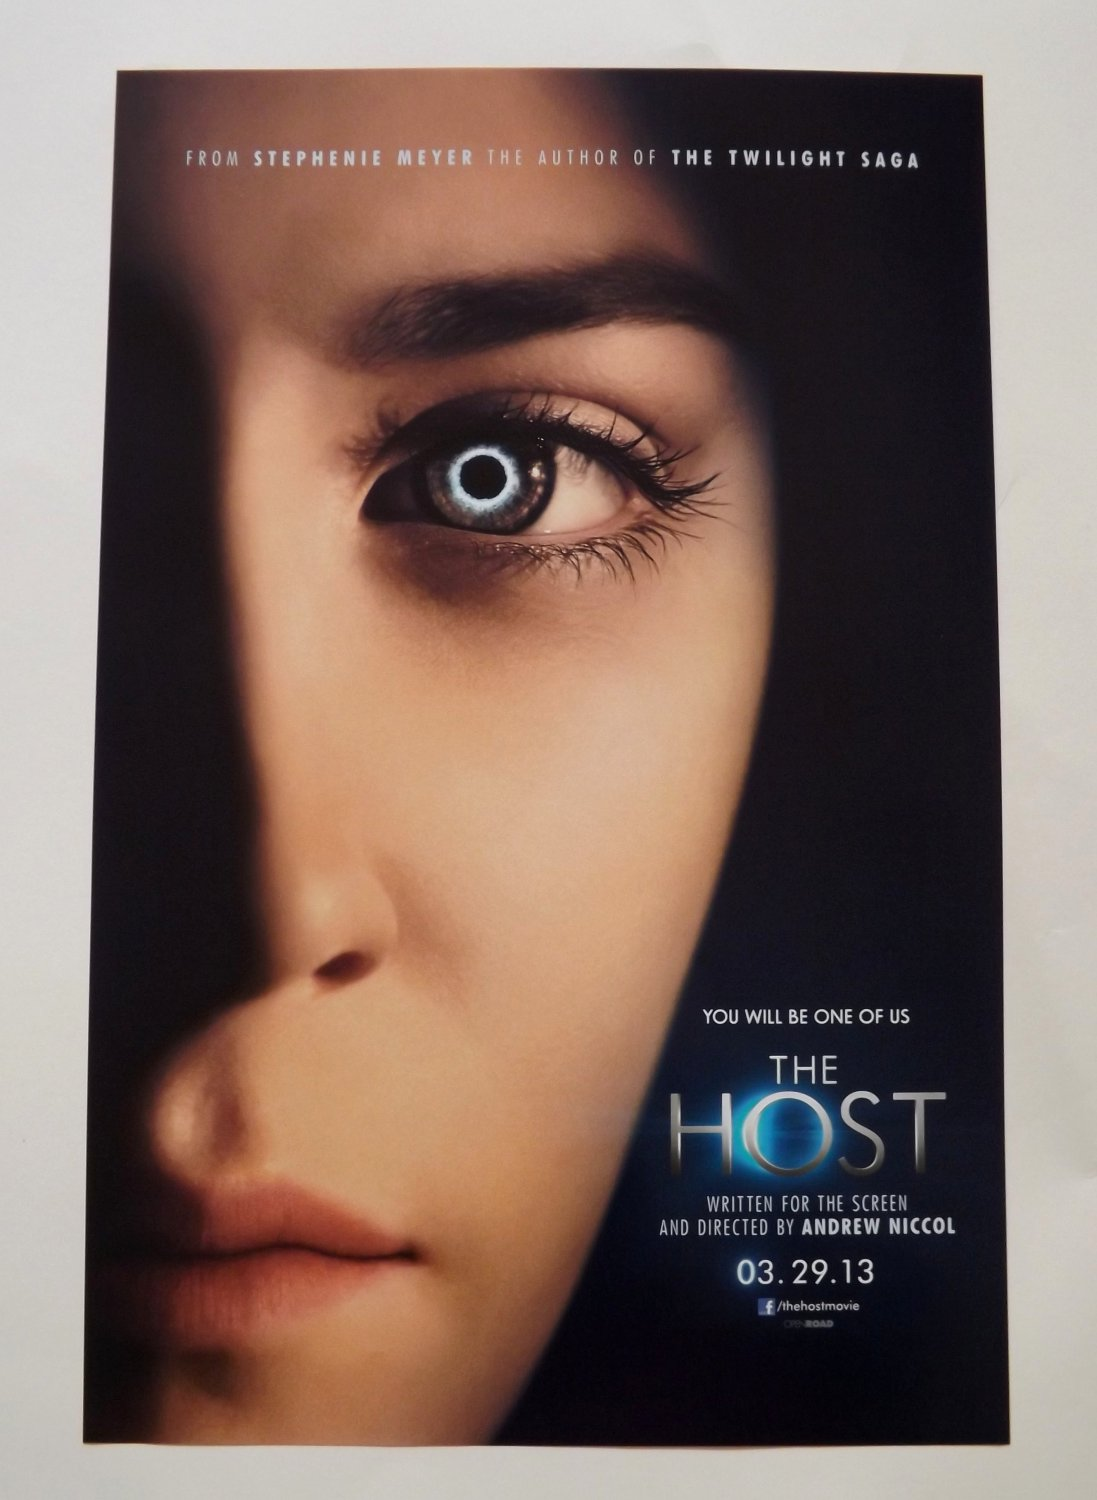 Rare THE HOST Promo Poster SDCC Comic Con 2012 - Stephenie Meyer - Andrew Niccol